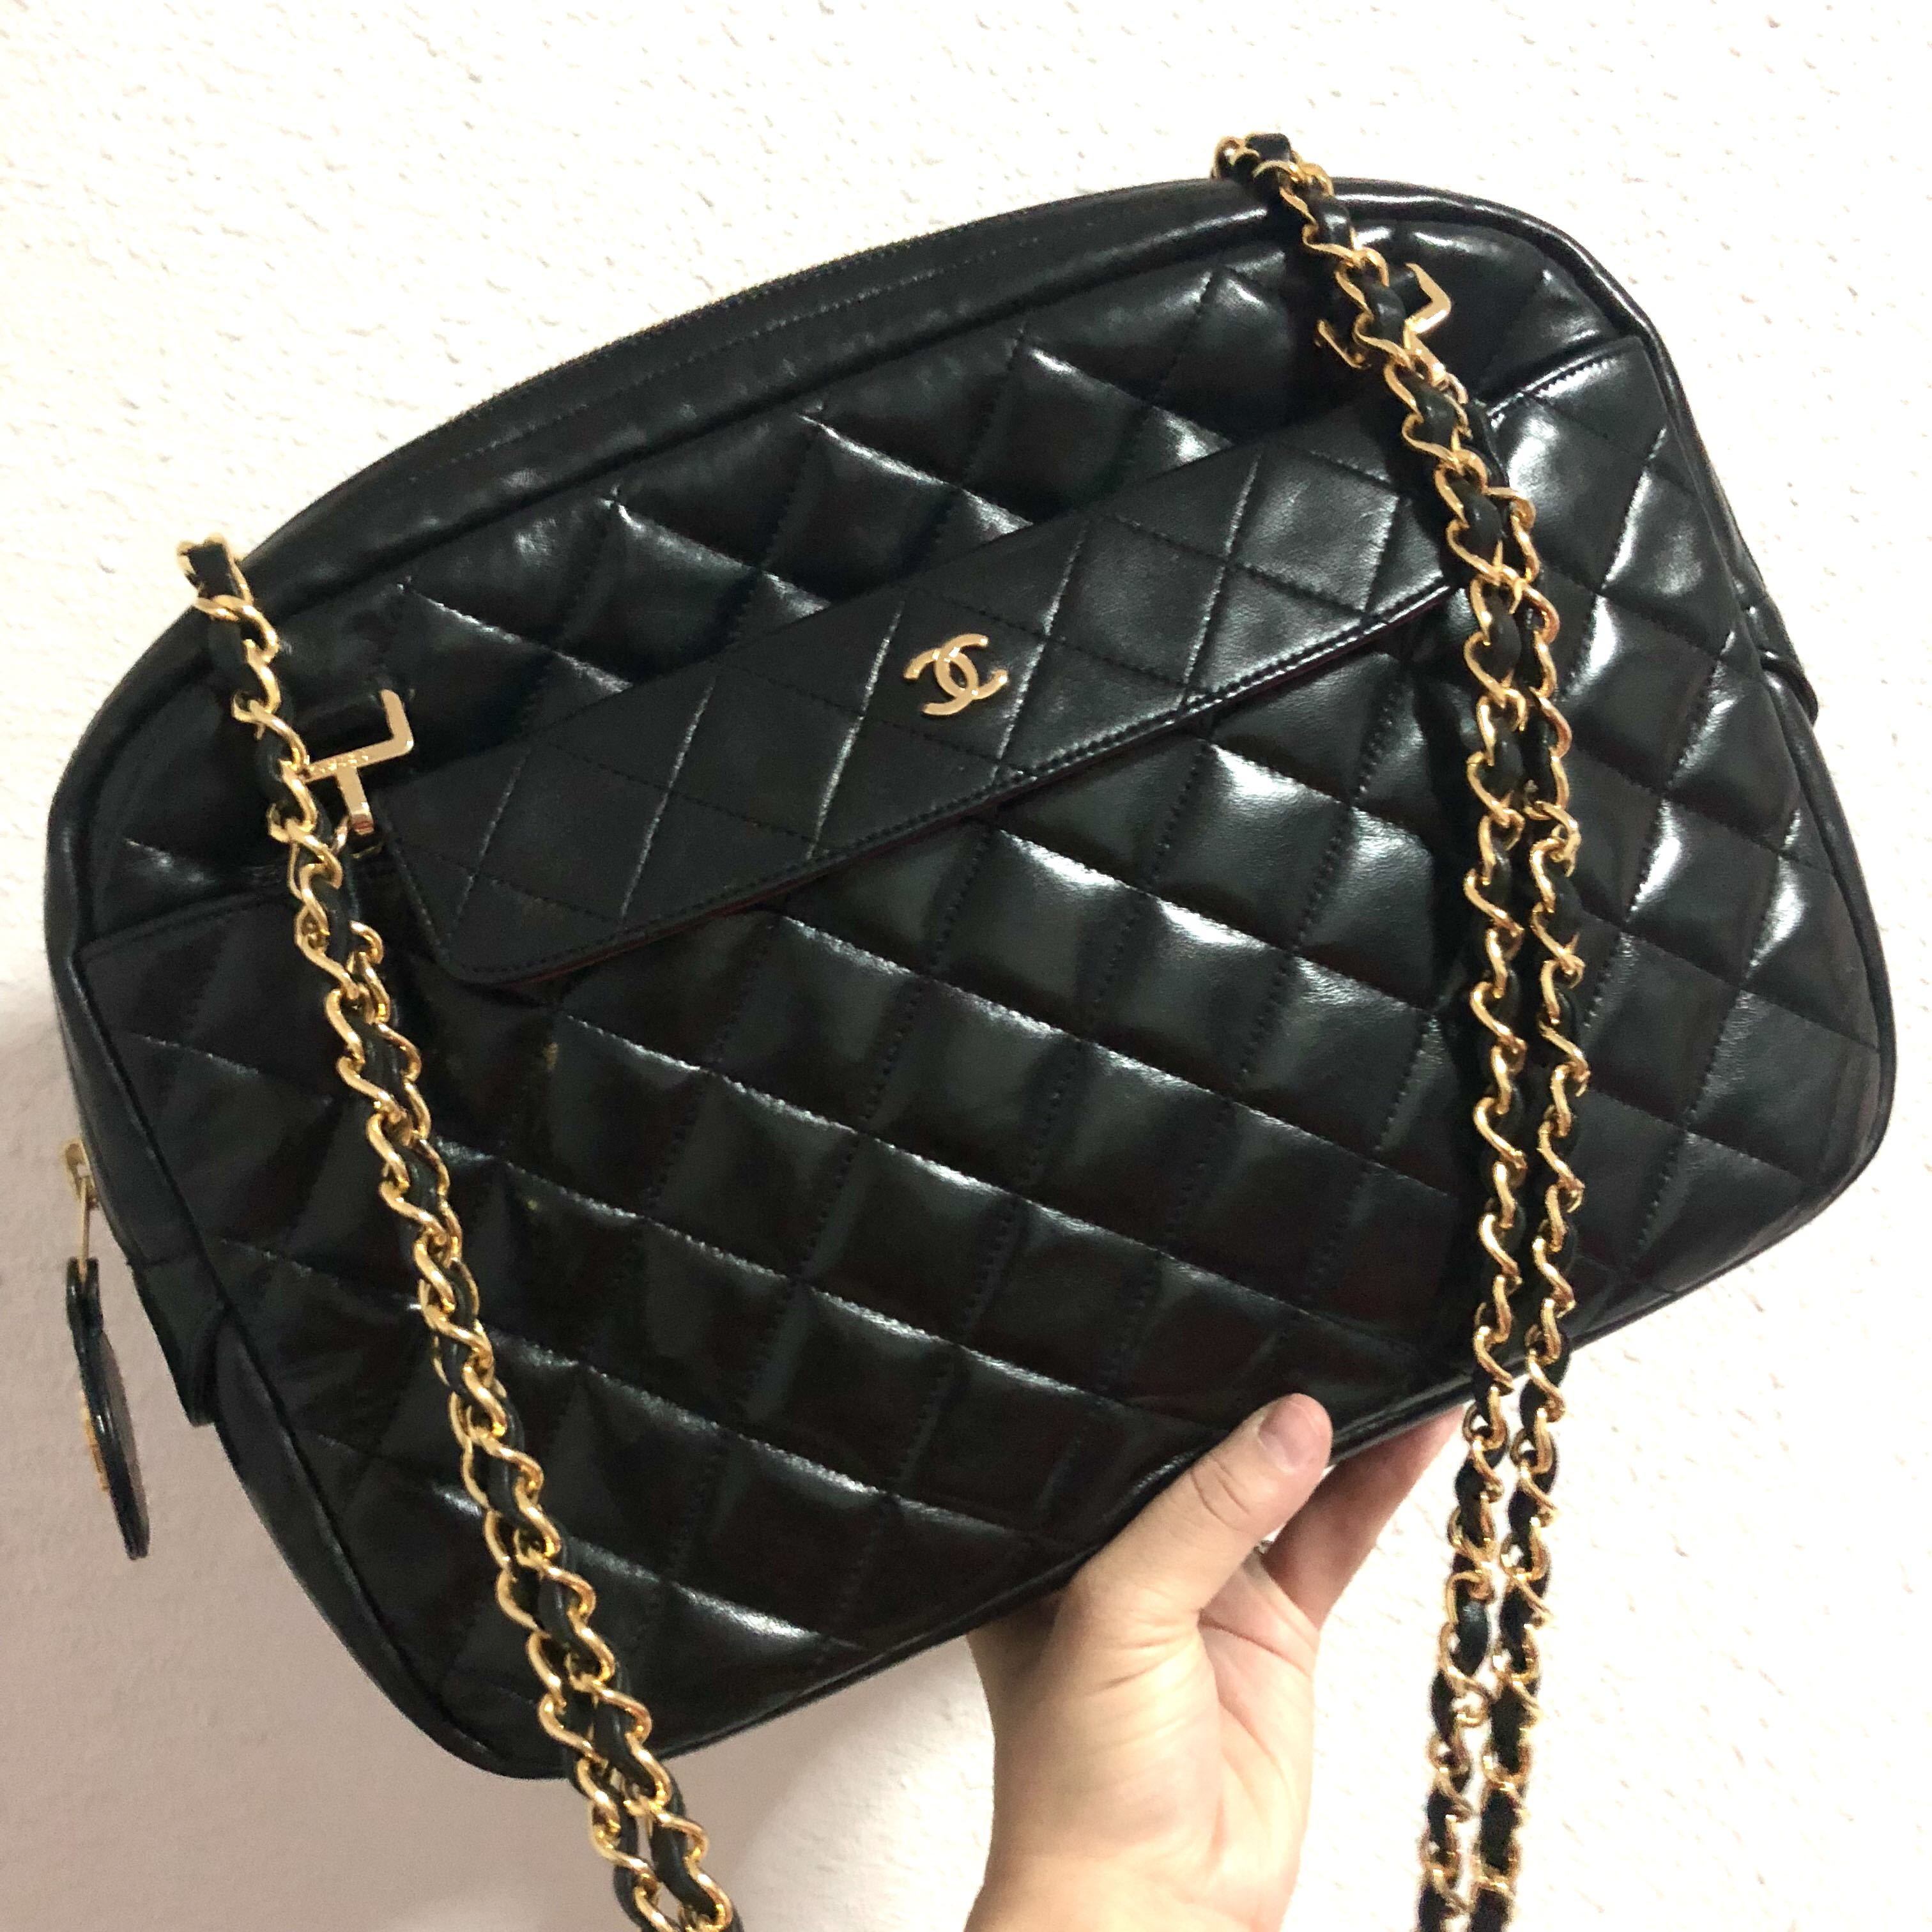 69425f9dd152 Authentic Chanel Lambskin Quilted Bag with 24k Gold Hardware, Luxury ...